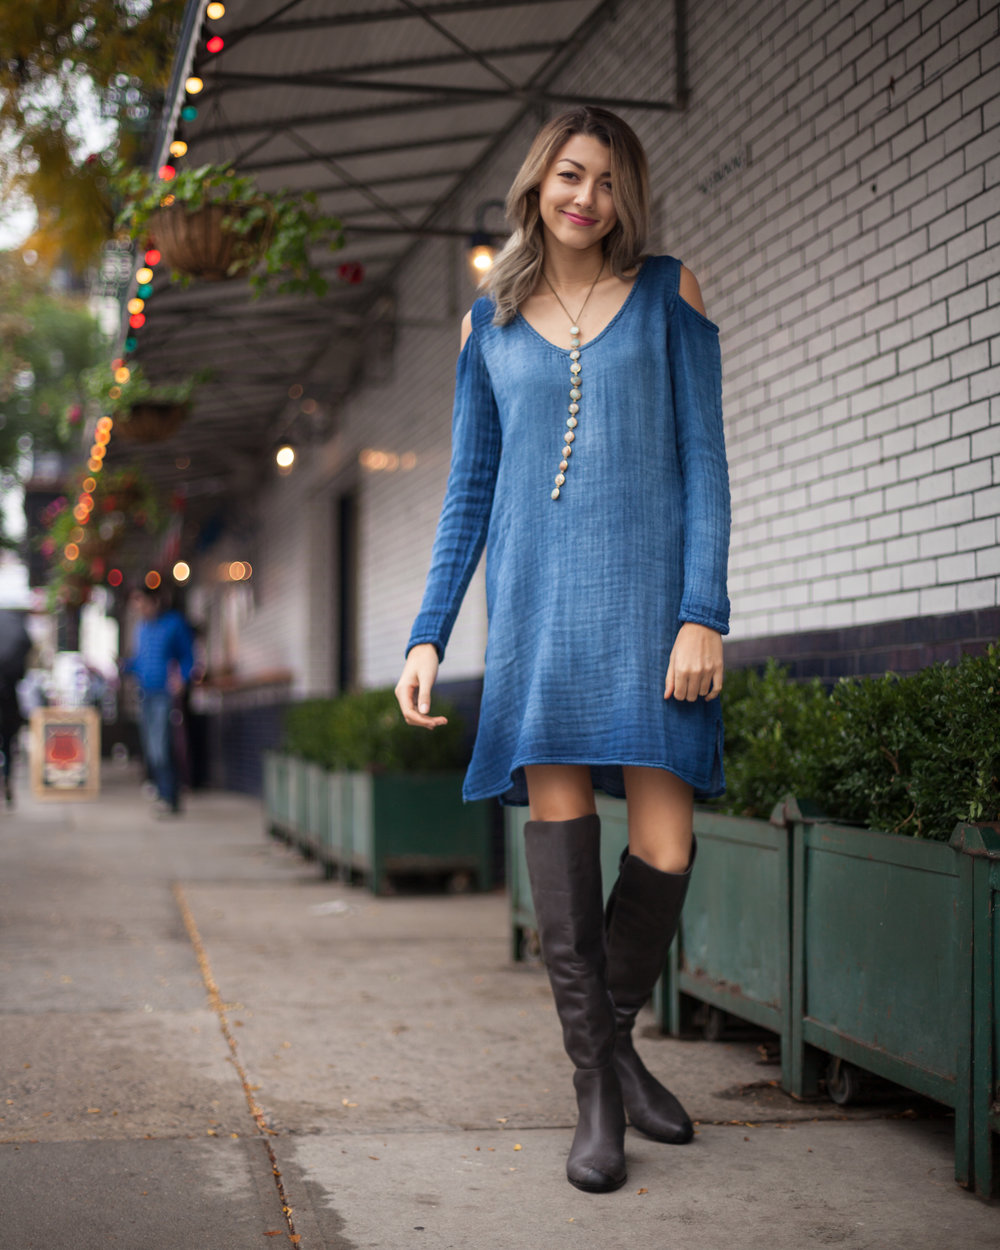 maggie ann re anthropologie anthro fifth avenue bowery instagram east village new york city nyc downtown fashion photo cloth and stone cafe holiday maggieannre